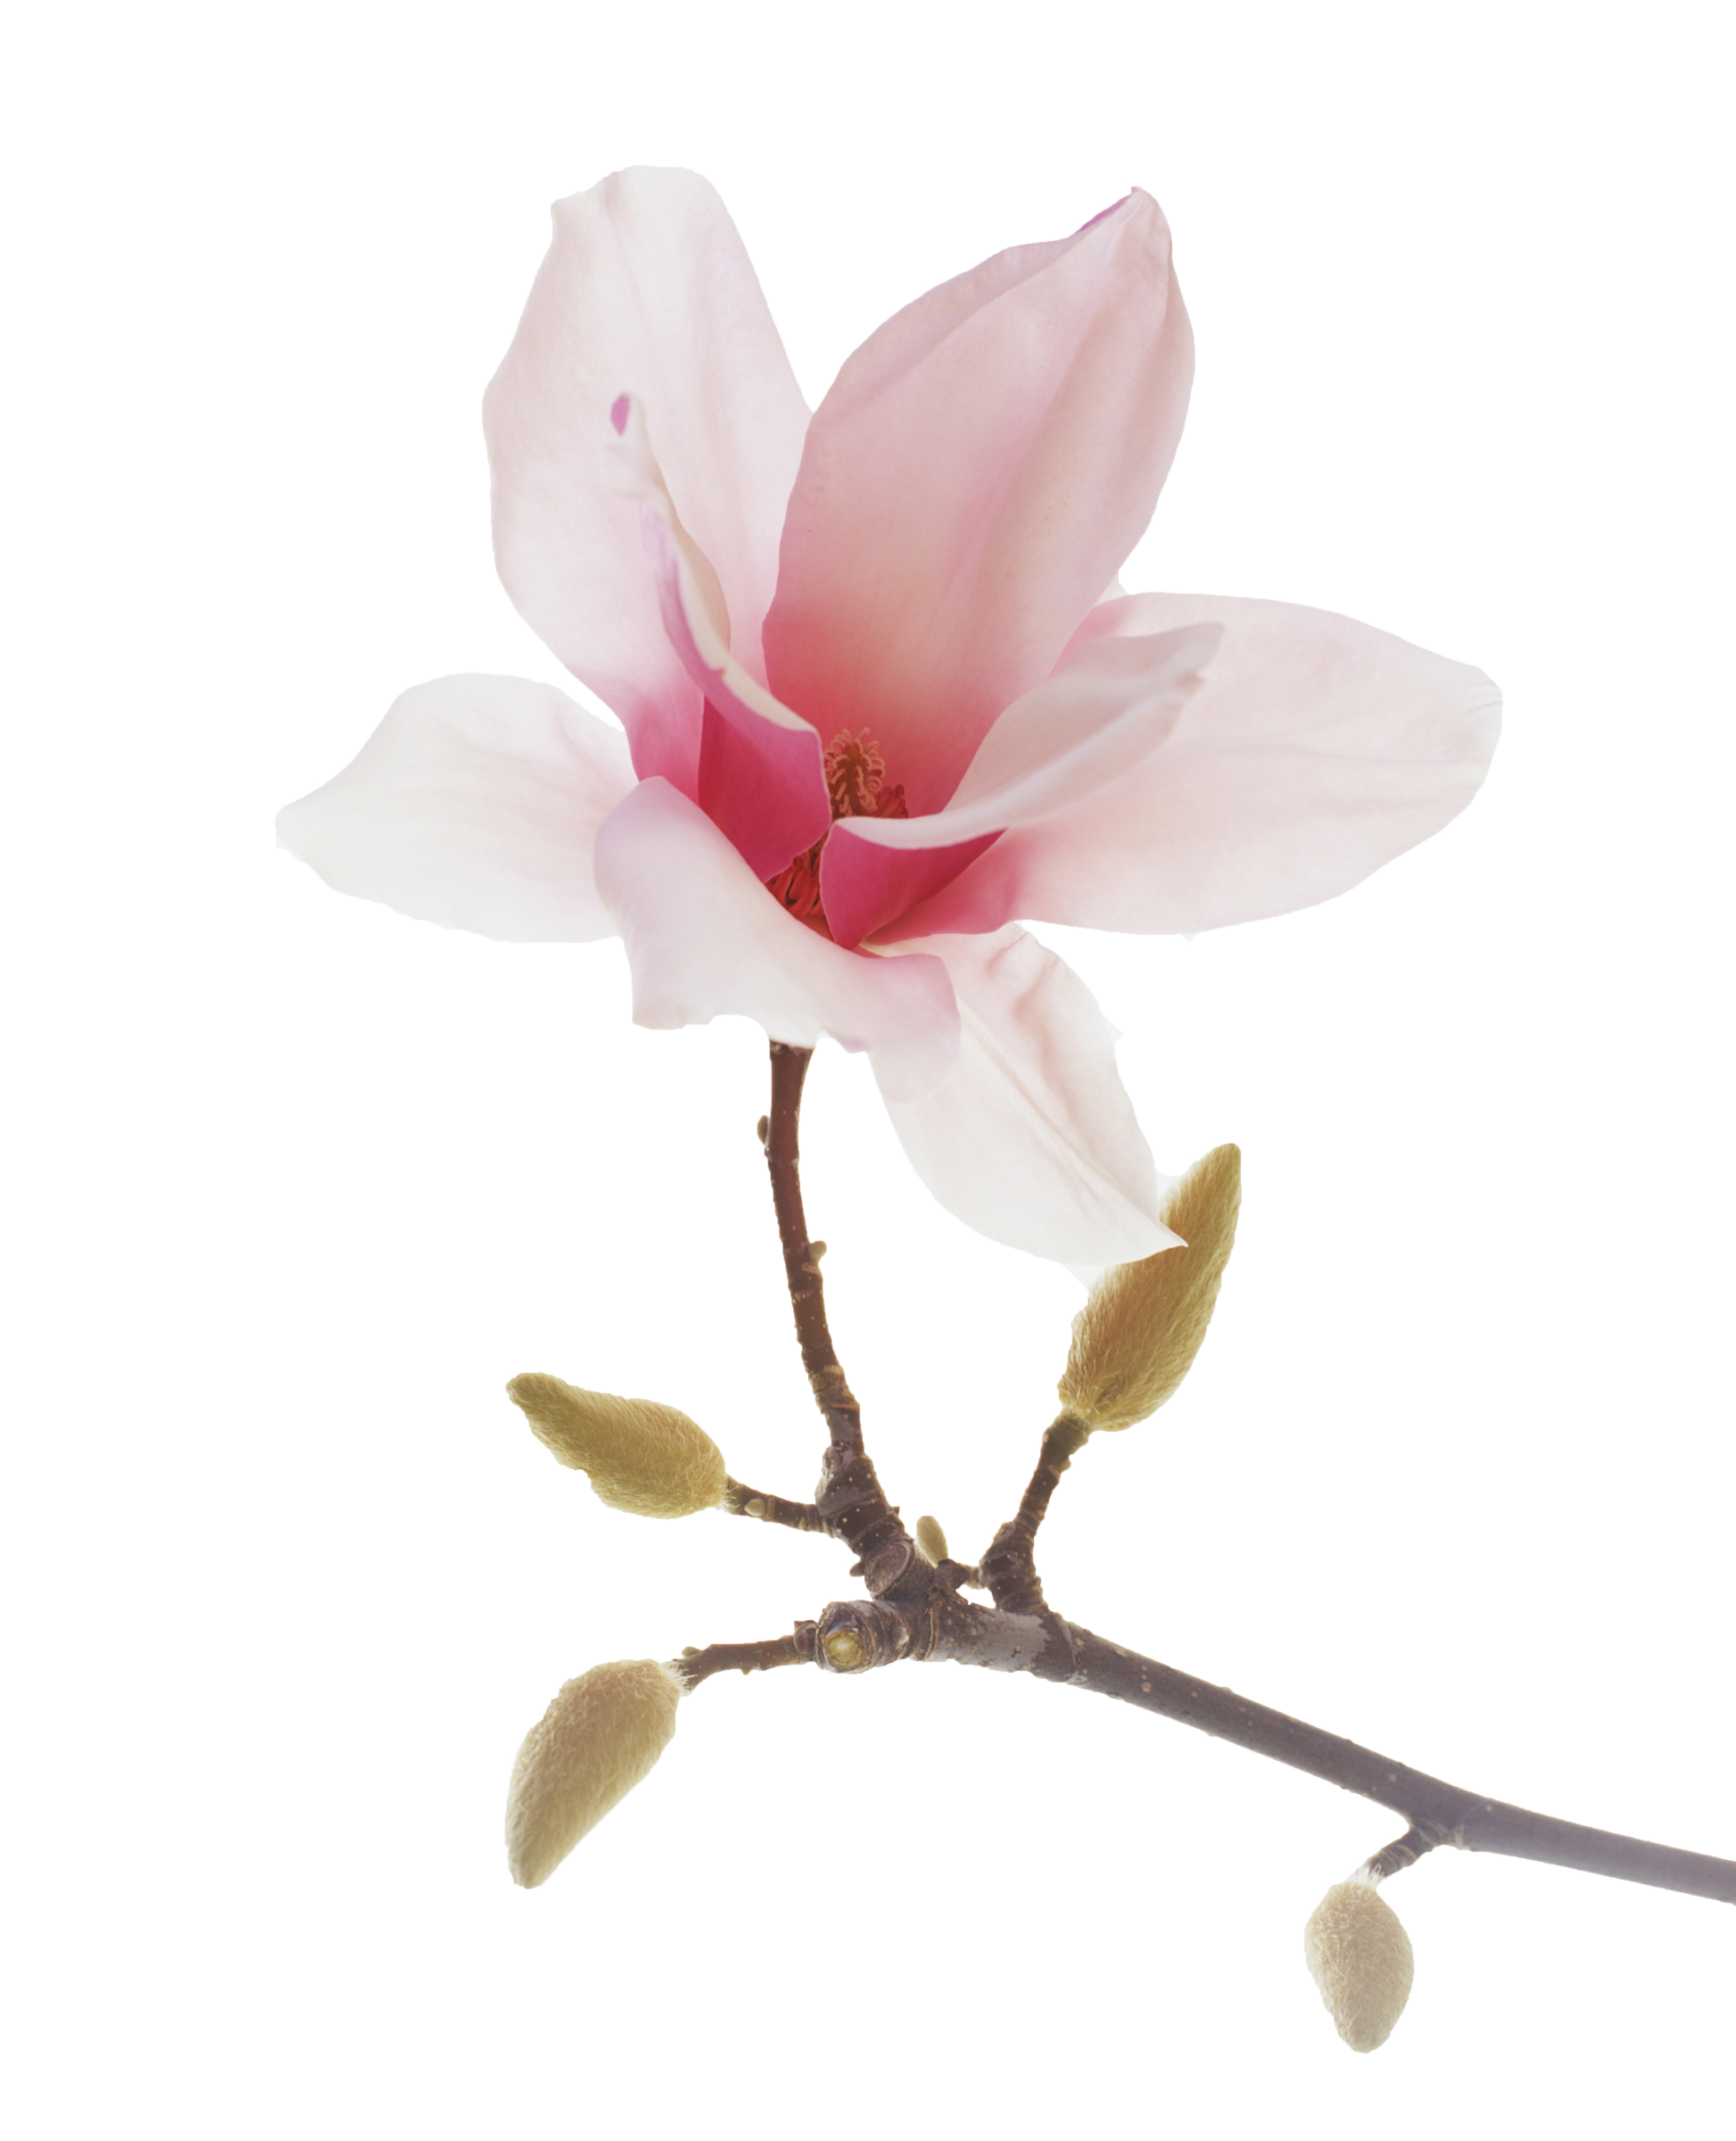 Magnolia flower clipart banner library library 28893-magnolia | Spiritual | Pinterest | Magnolia and Flowers banner library library